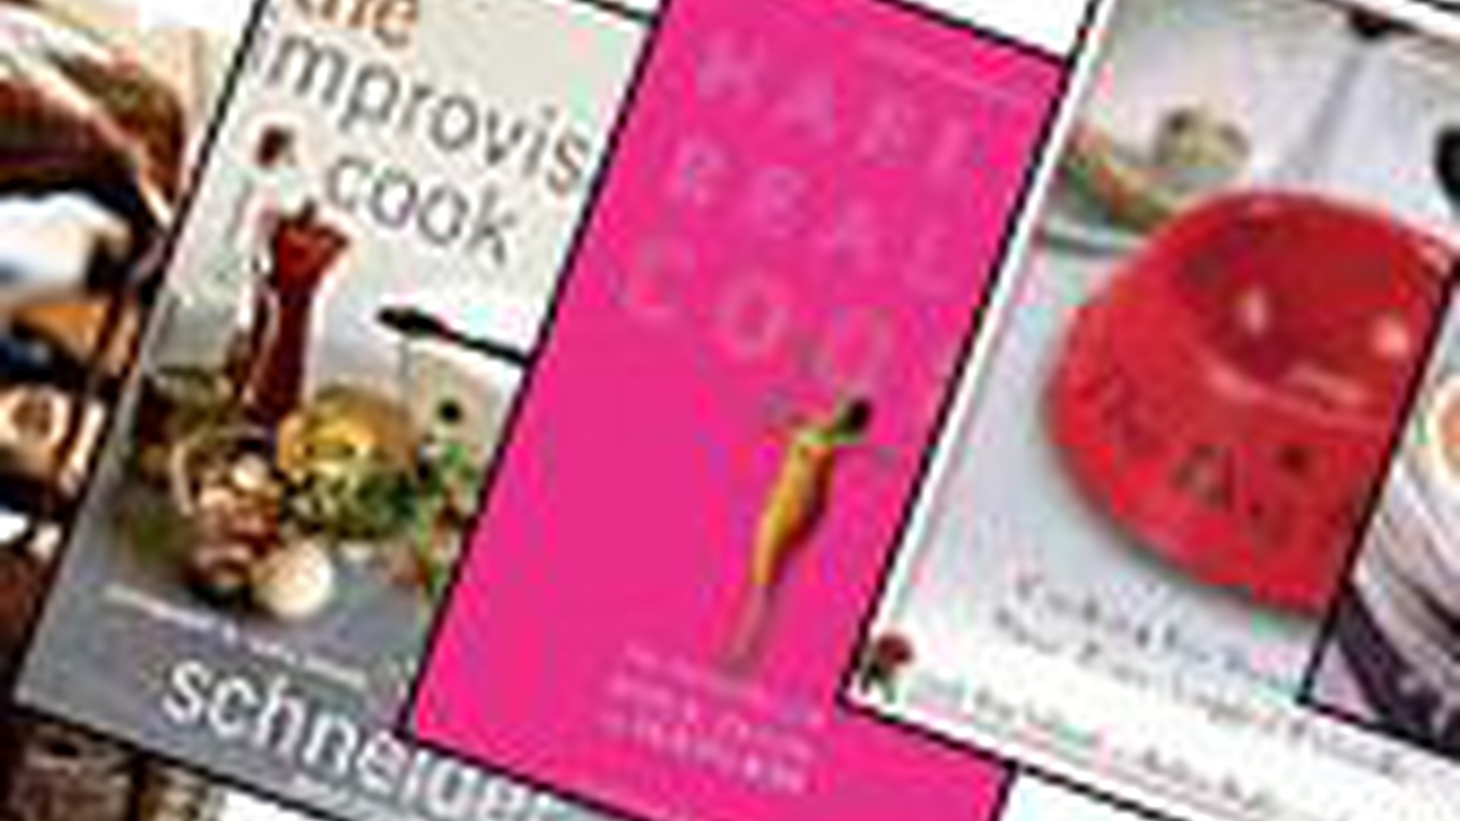 Cynthia Epps coos about feeding baby and Will Clower tells us how to avoid having a belly like Santa Baby. Linda West Eckhardt is cooking for dogs and Eric Gower is breaking away with blenders. Nancy Zaslavsky finds the ultimate taco joint and Ellen Rose previews the best gift cookbooks for the season. John Scharffenberger, en expert on chocolate's true essence, gives us a splendid primer.